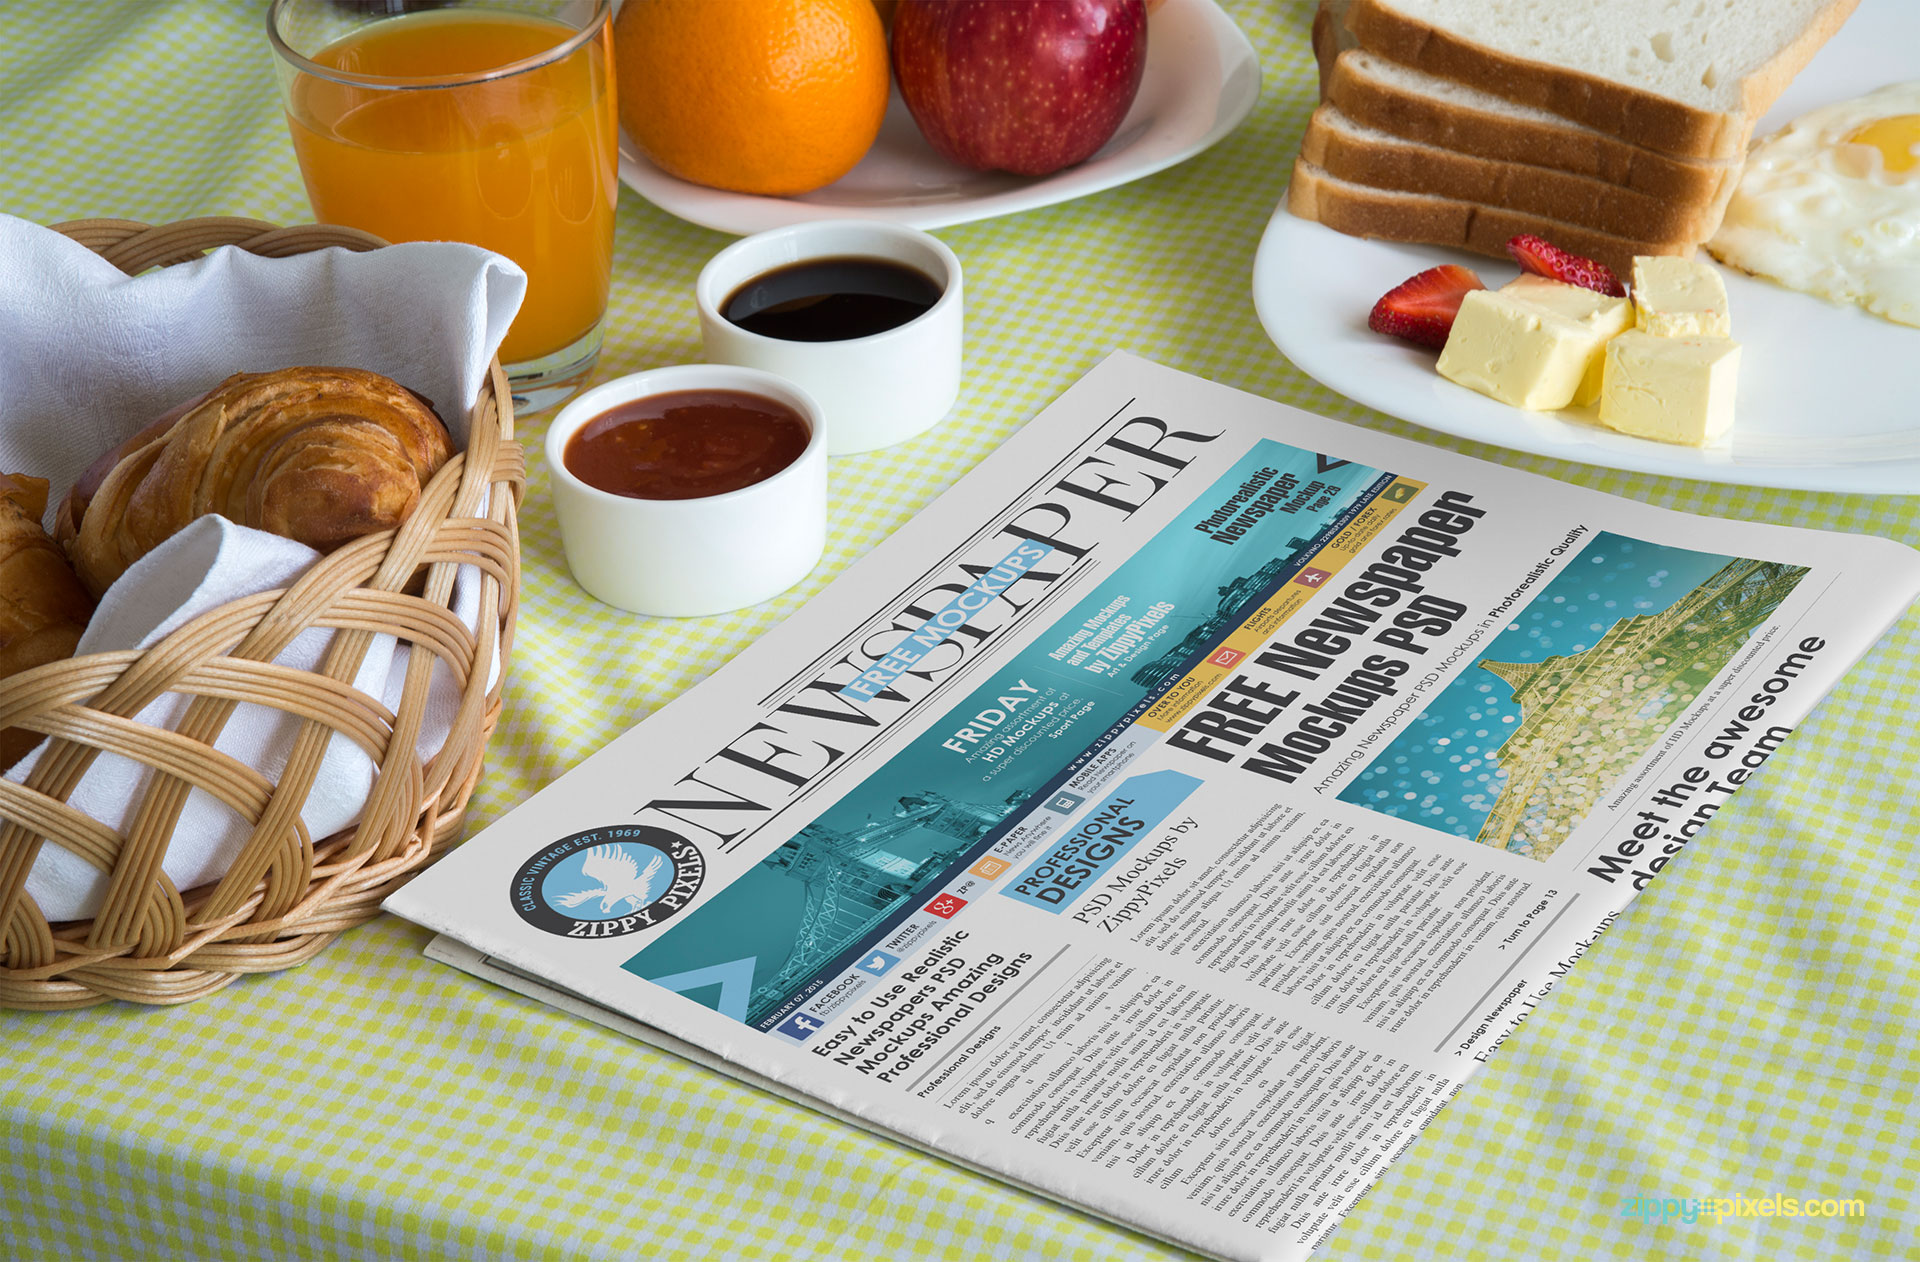 Free newspaper mockup PSD with a sophisticated breakfast table environment.